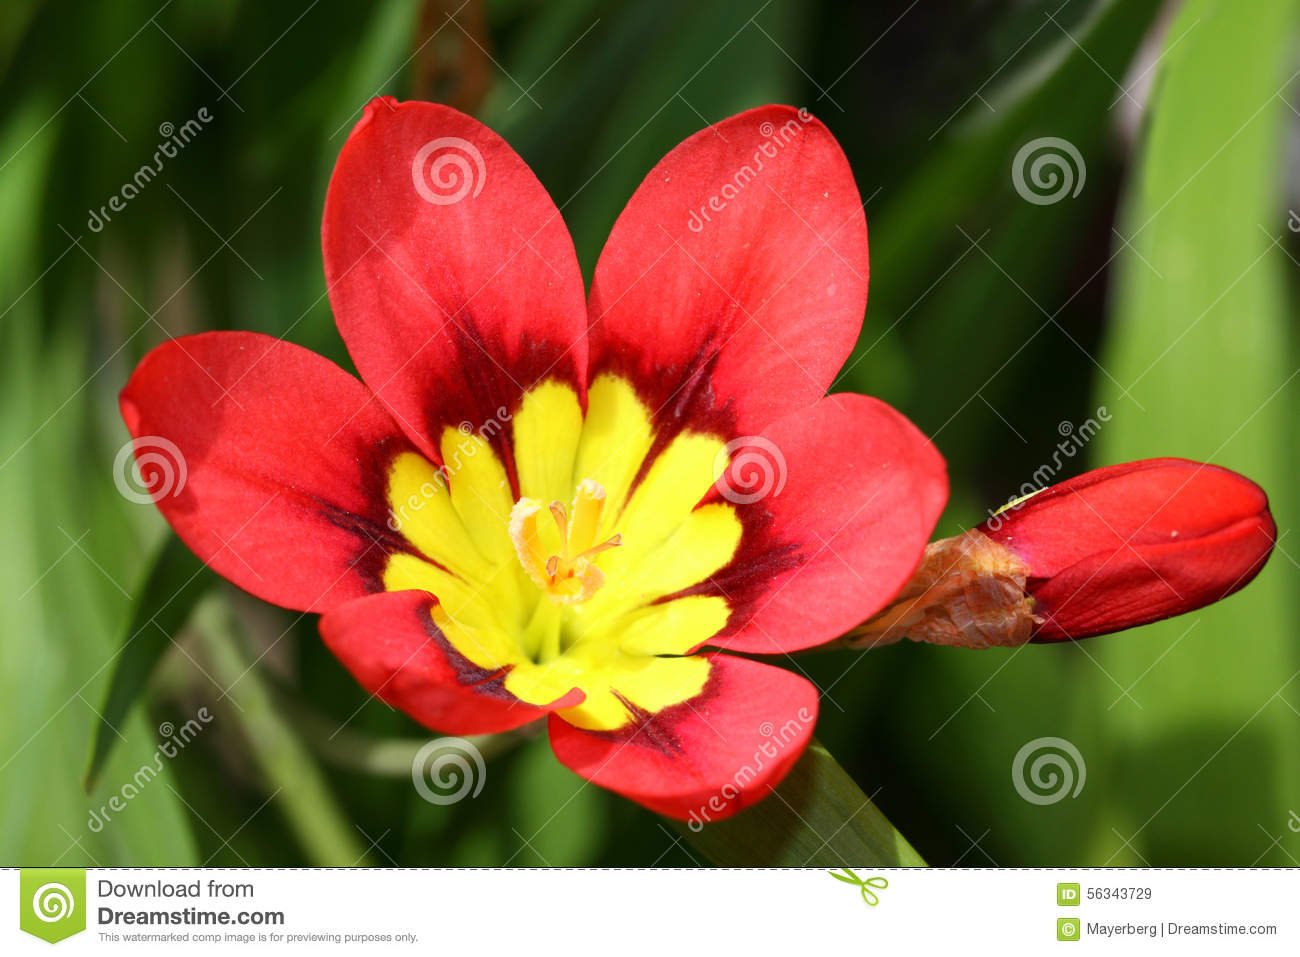 Red yellow ixia flowers stock image image of blooming 56343729 download red yellow ixia flowers stock image image of blooming 56343729 mightylinksfo